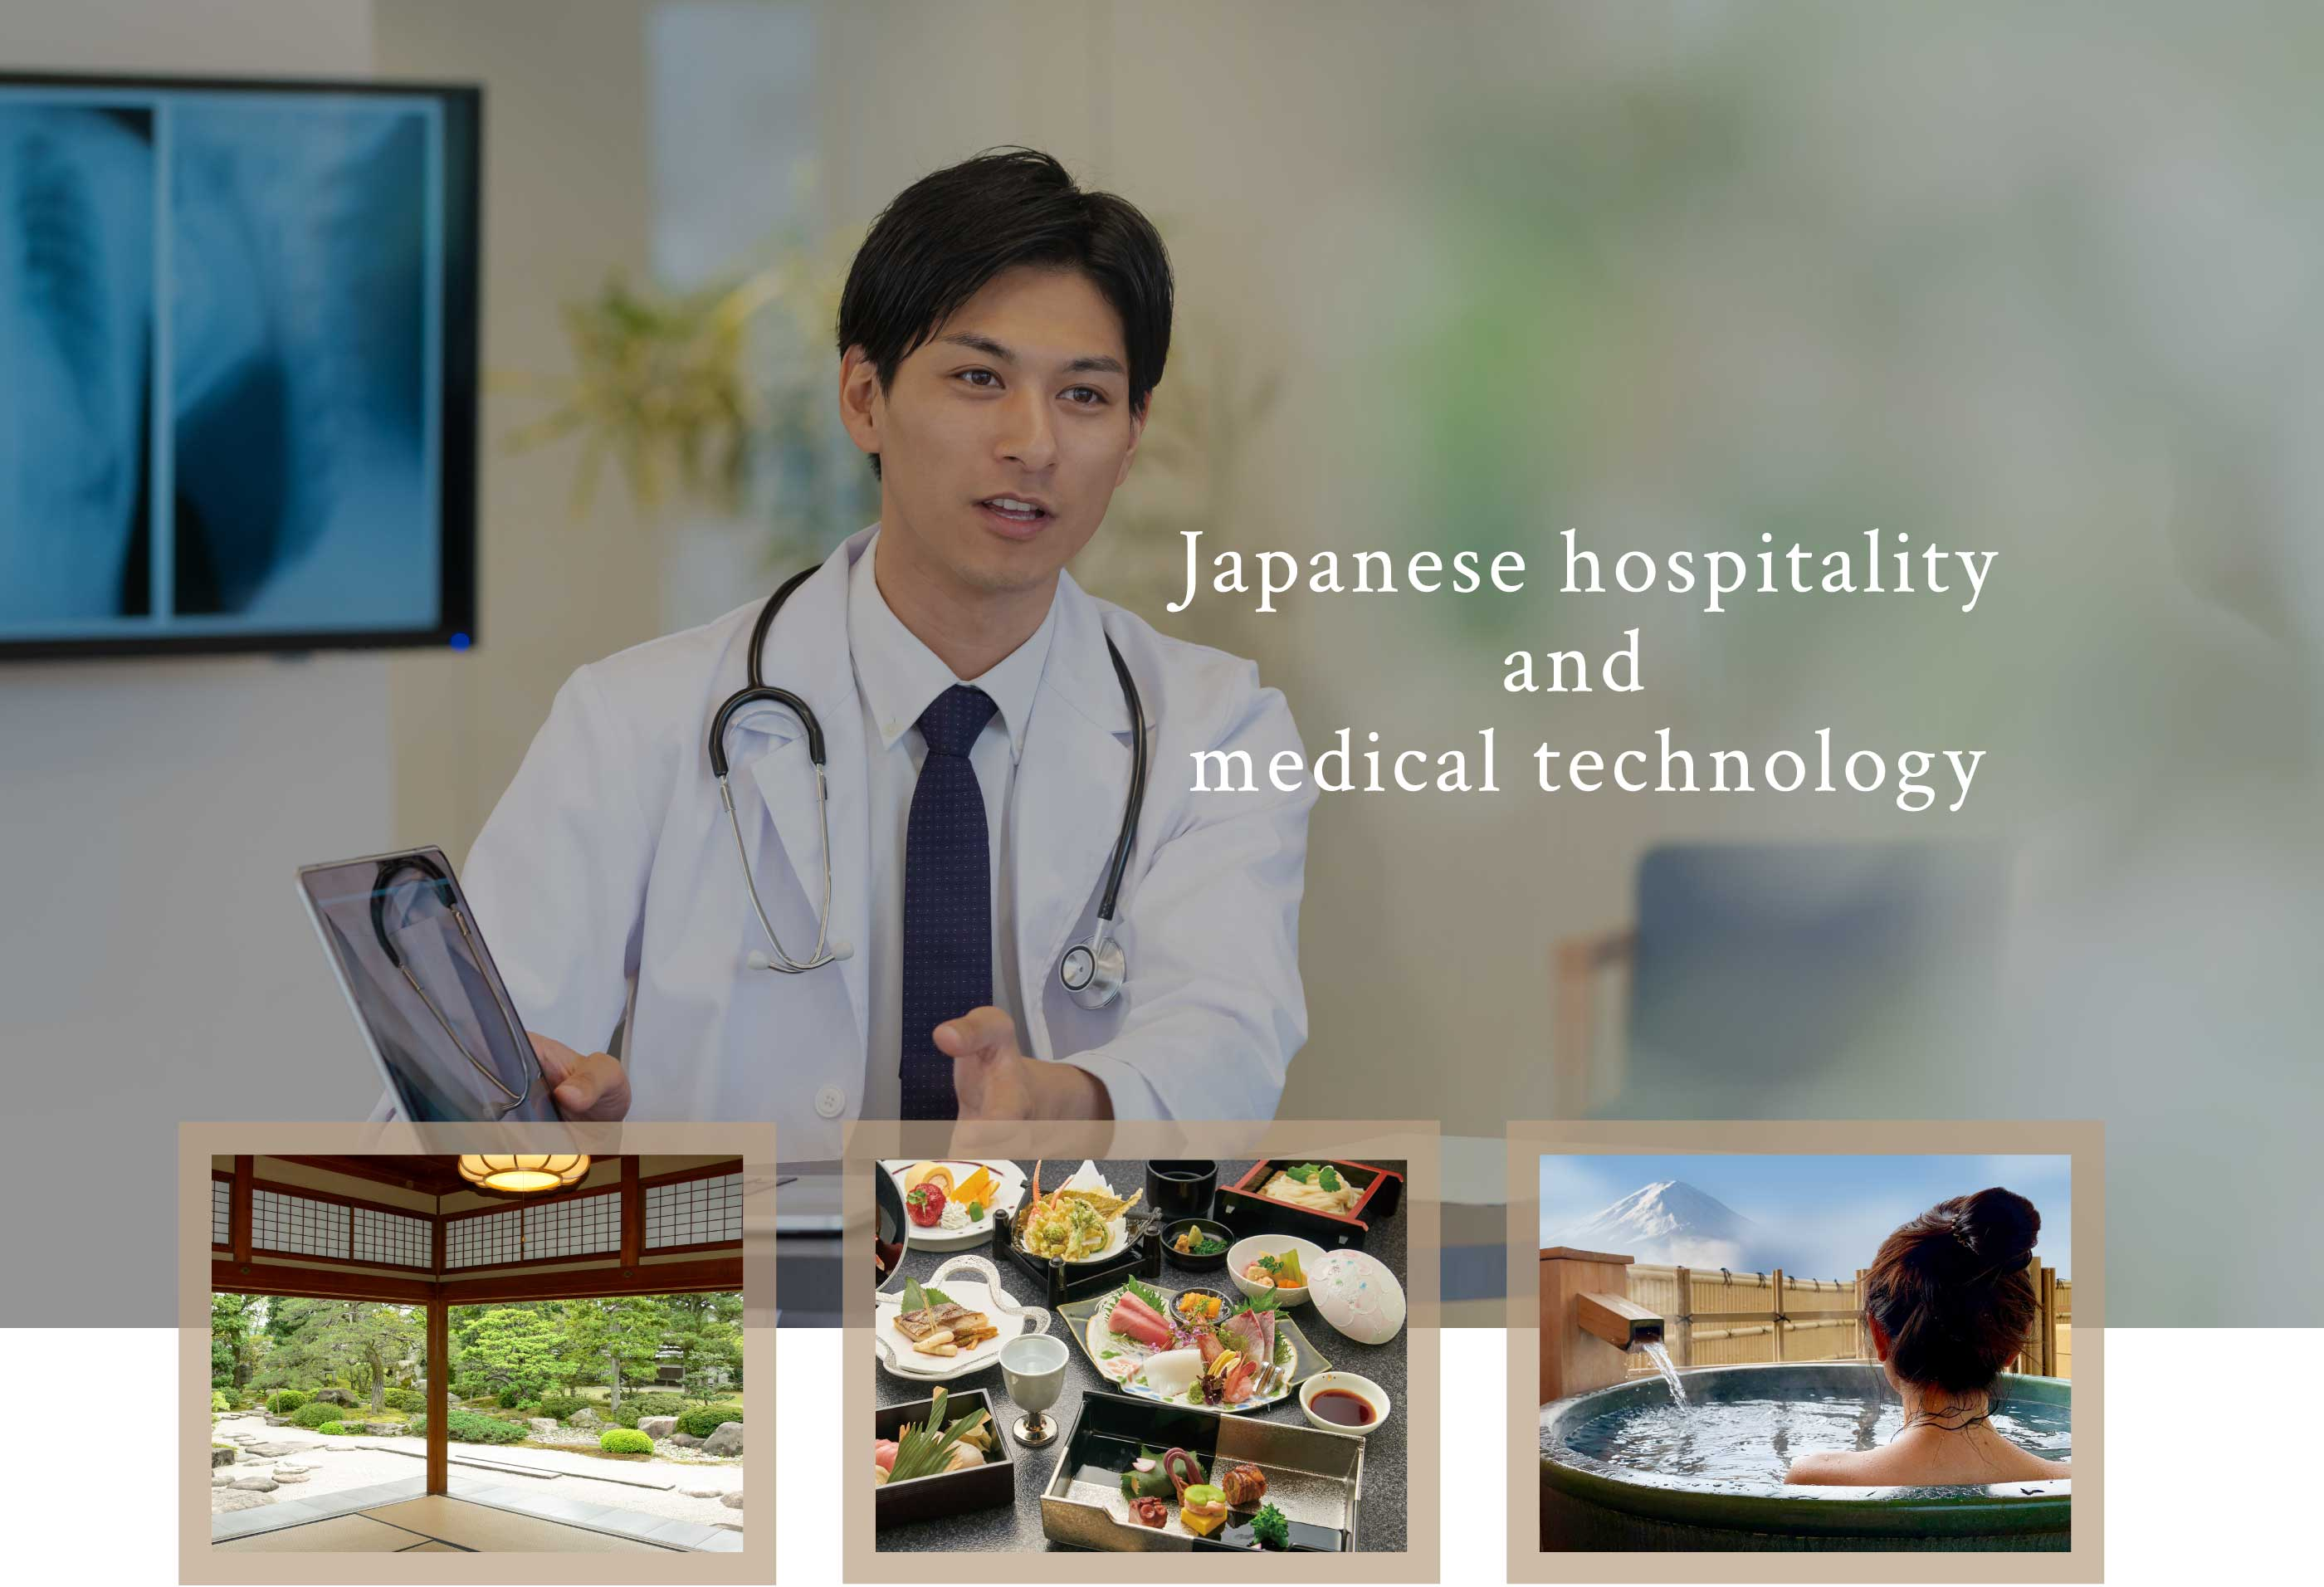 Japanese hospitality and medical technology